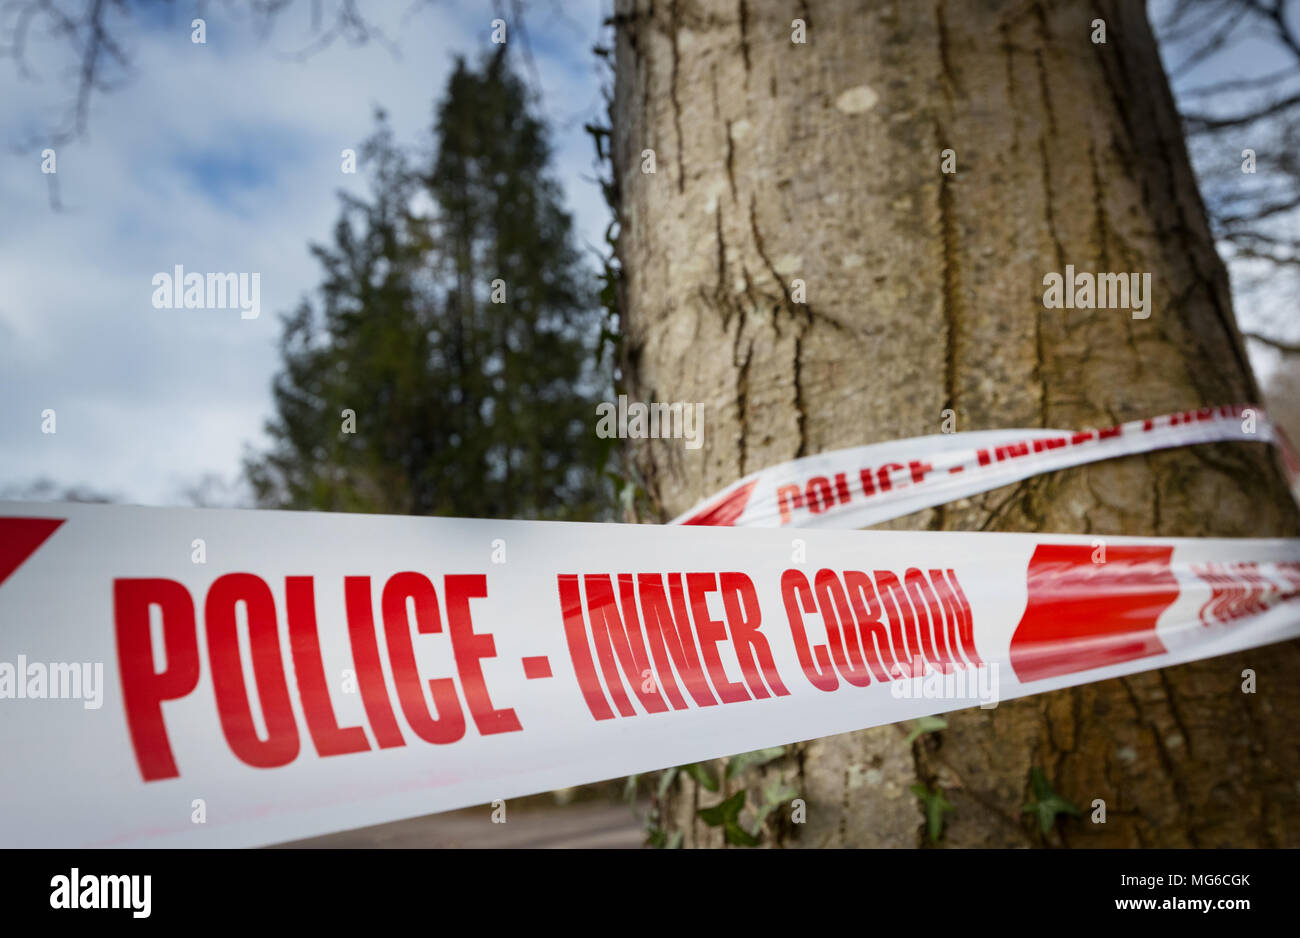 Police Inner Cordon tape wrapped around a tree - Stock Image